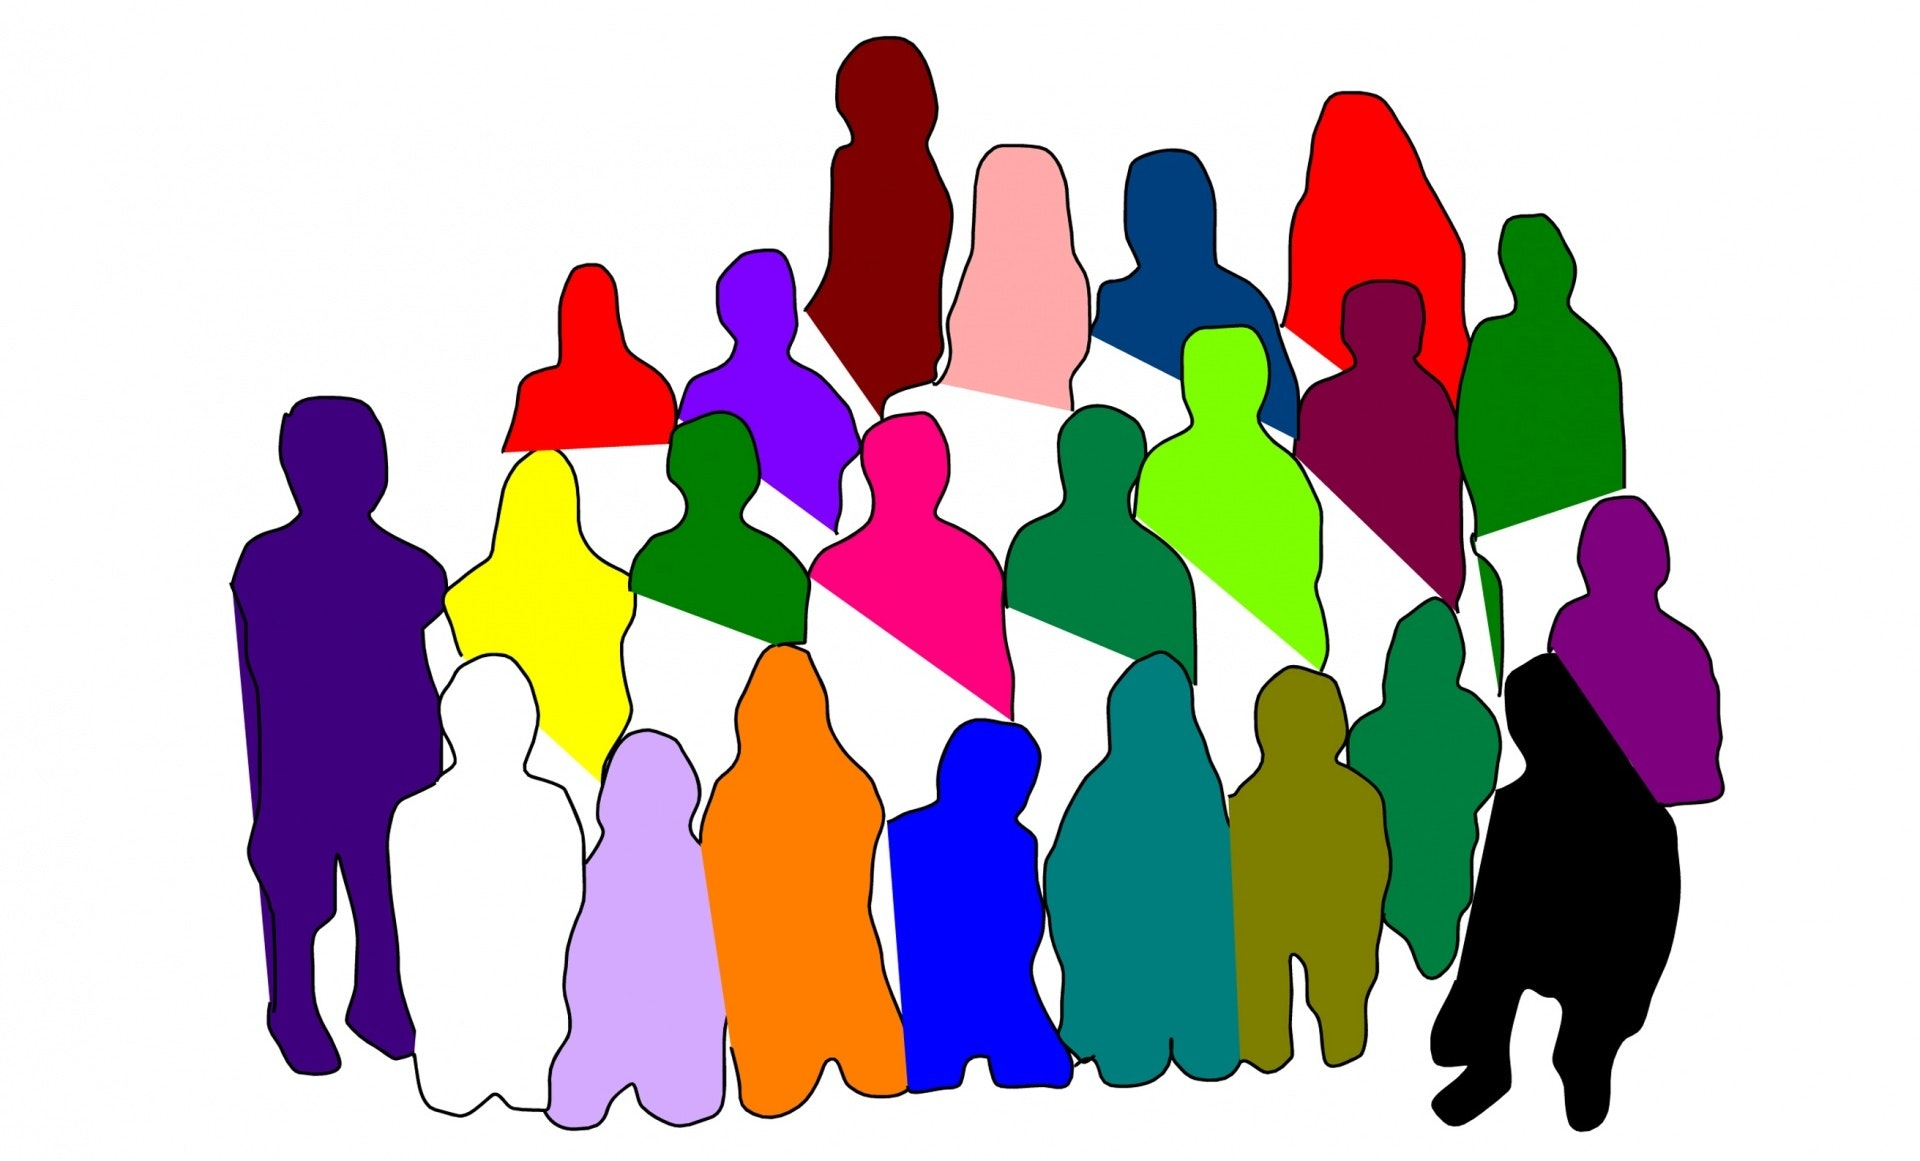 line drawing of a large group of different-colored people in silhouette